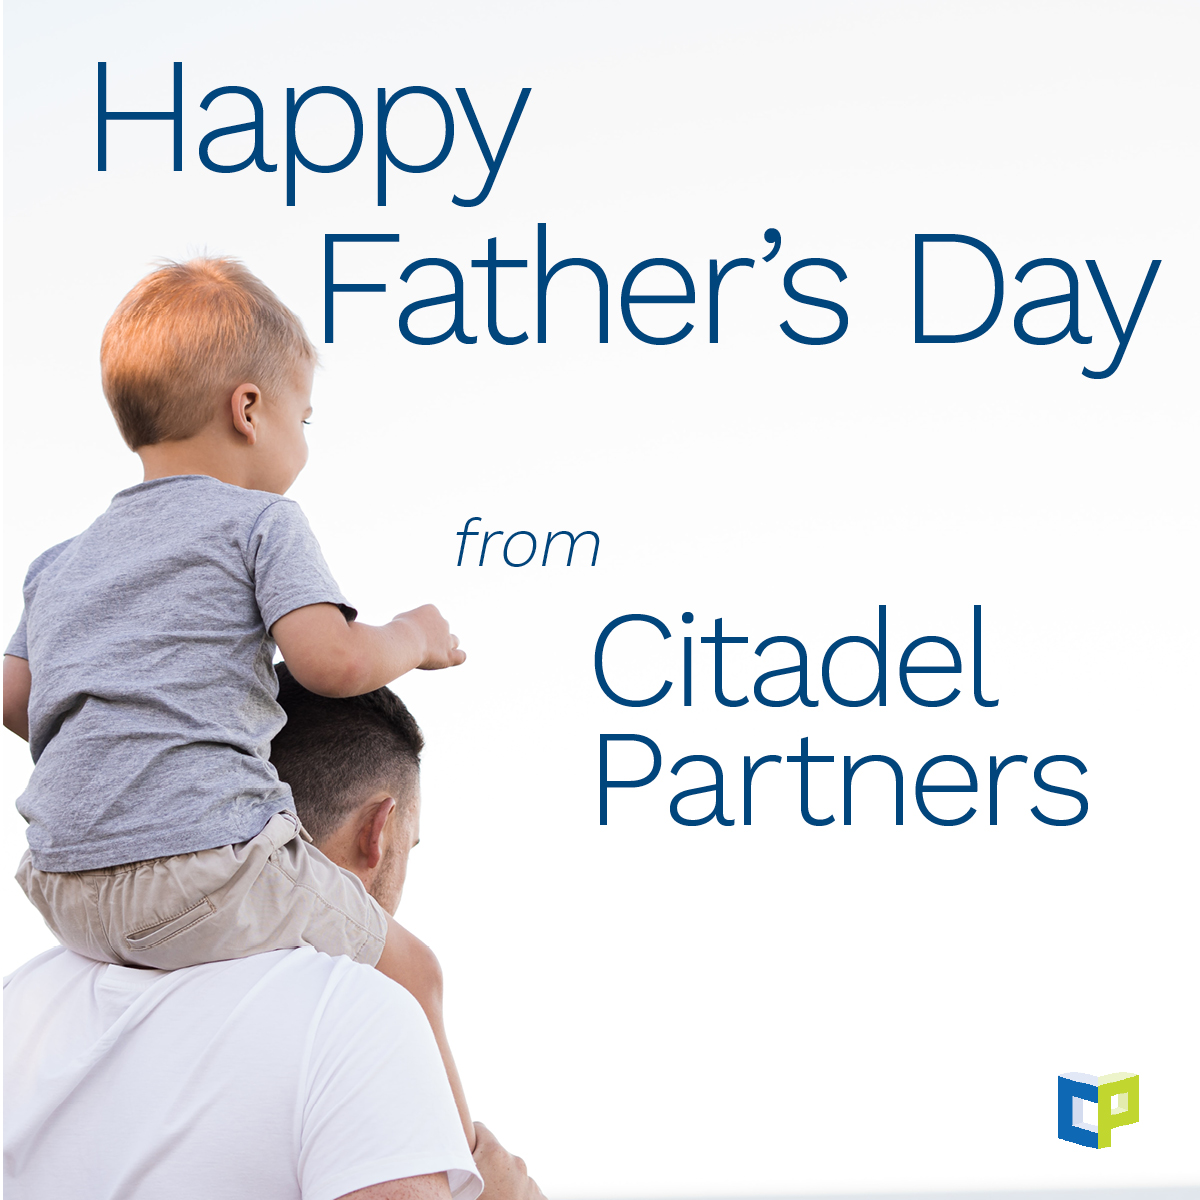 test Twitter Media - Happy Father's Day from Citadel Partners! #fathersday2020 #DallasCommercialRealEstate #CitadelPartners #fatherhood https://t.co/pOlHCBDe8r